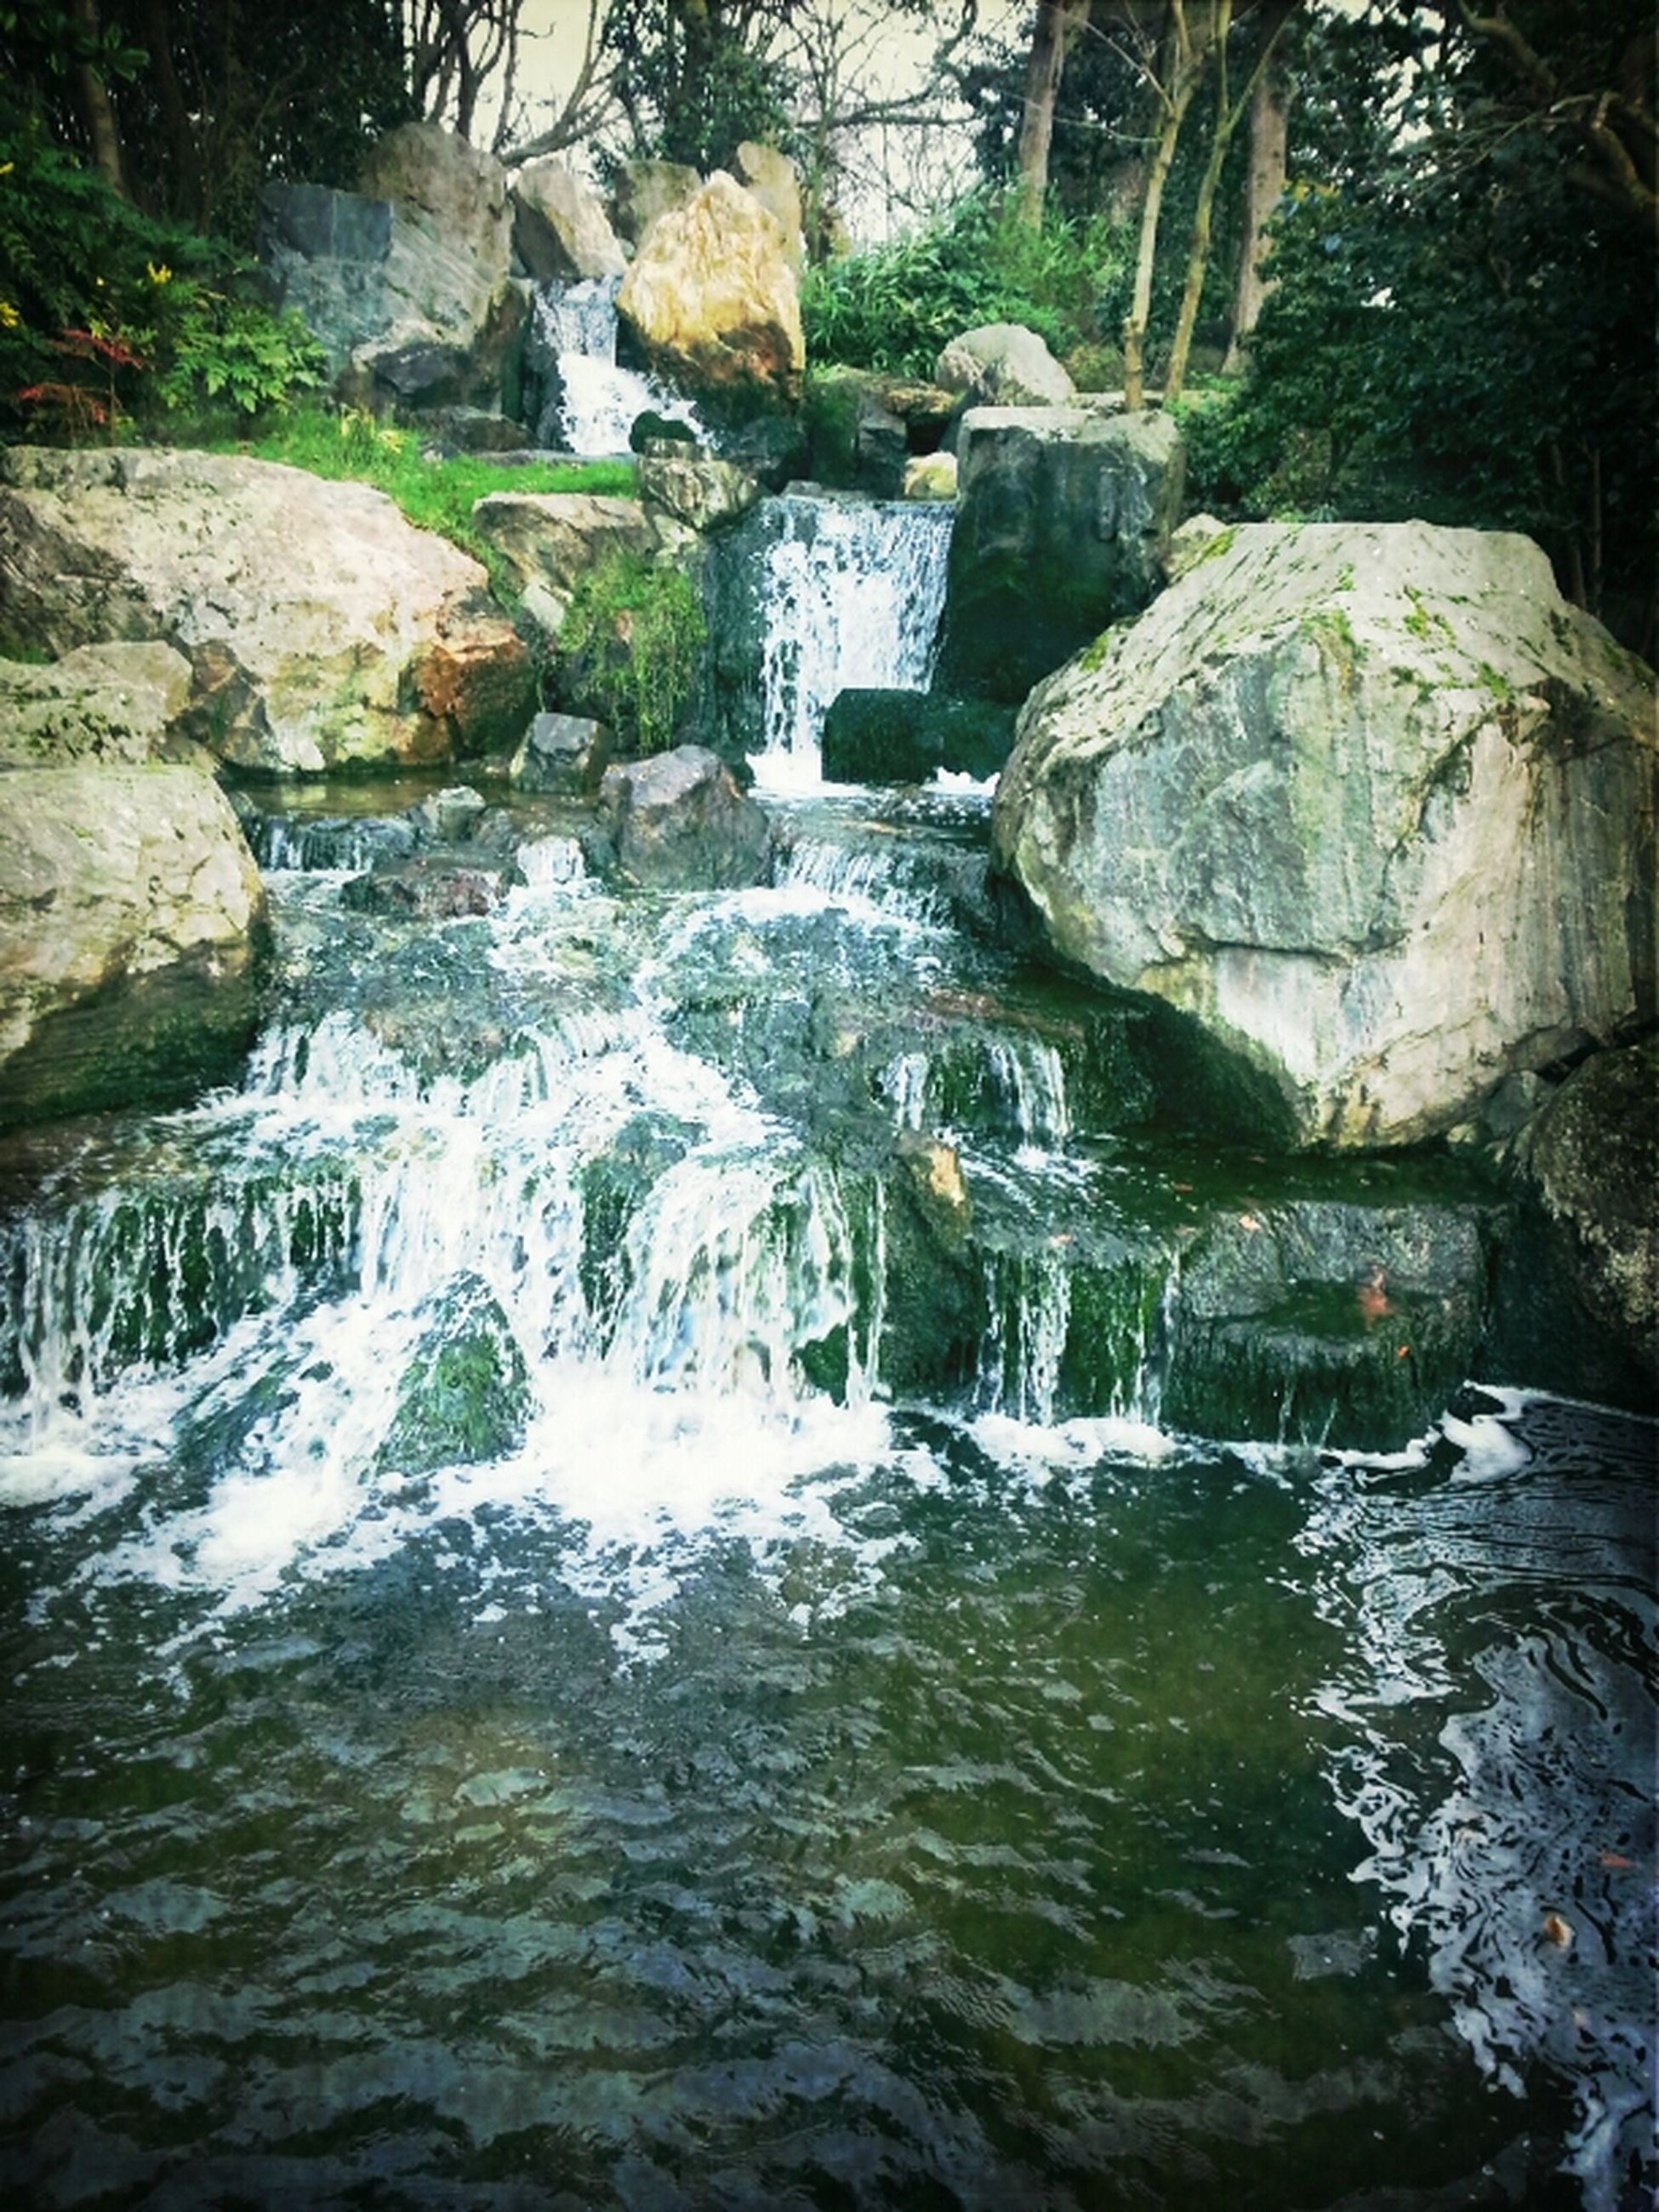 water, rock - object, flowing water, beauty in nature, nature, stream, flowing, scenics, river, tranquility, waterfront, rock, motion, waterfall, rock formation, tranquil scene, forest, day, no people, outdoors